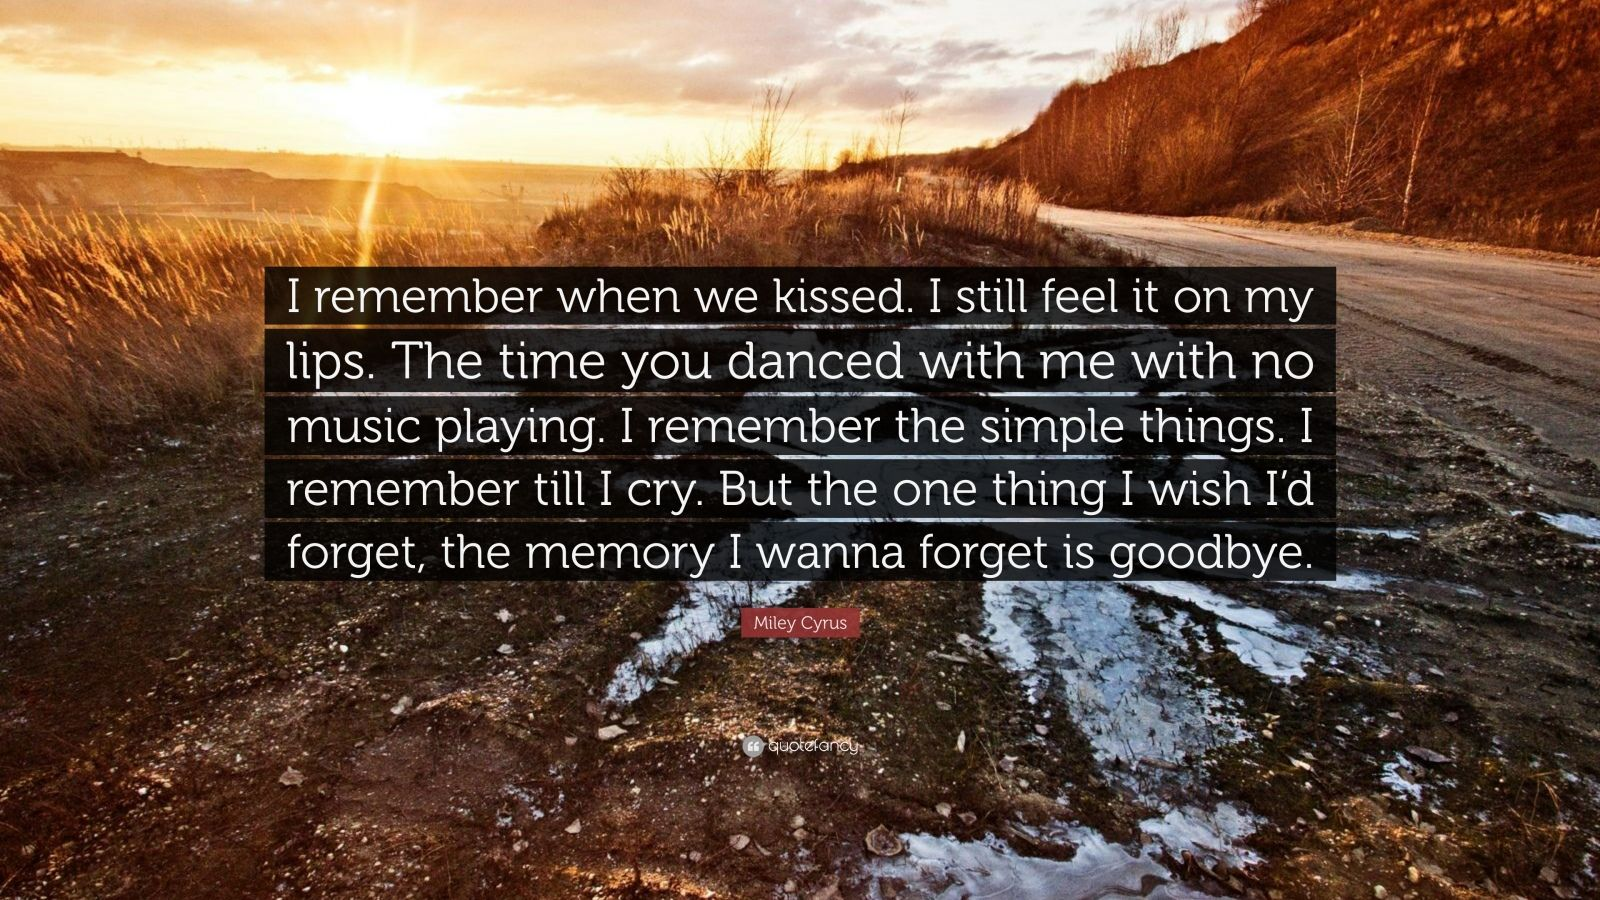 "Miley Cyrus Quote: ""I remember when we kissed. I still feel it on my lips. The time you danced with me with no music playing. I remember the simple things. I remember till I cry. But the one thing I wish I'd forget, the memory I wanna forget is goodbye."""